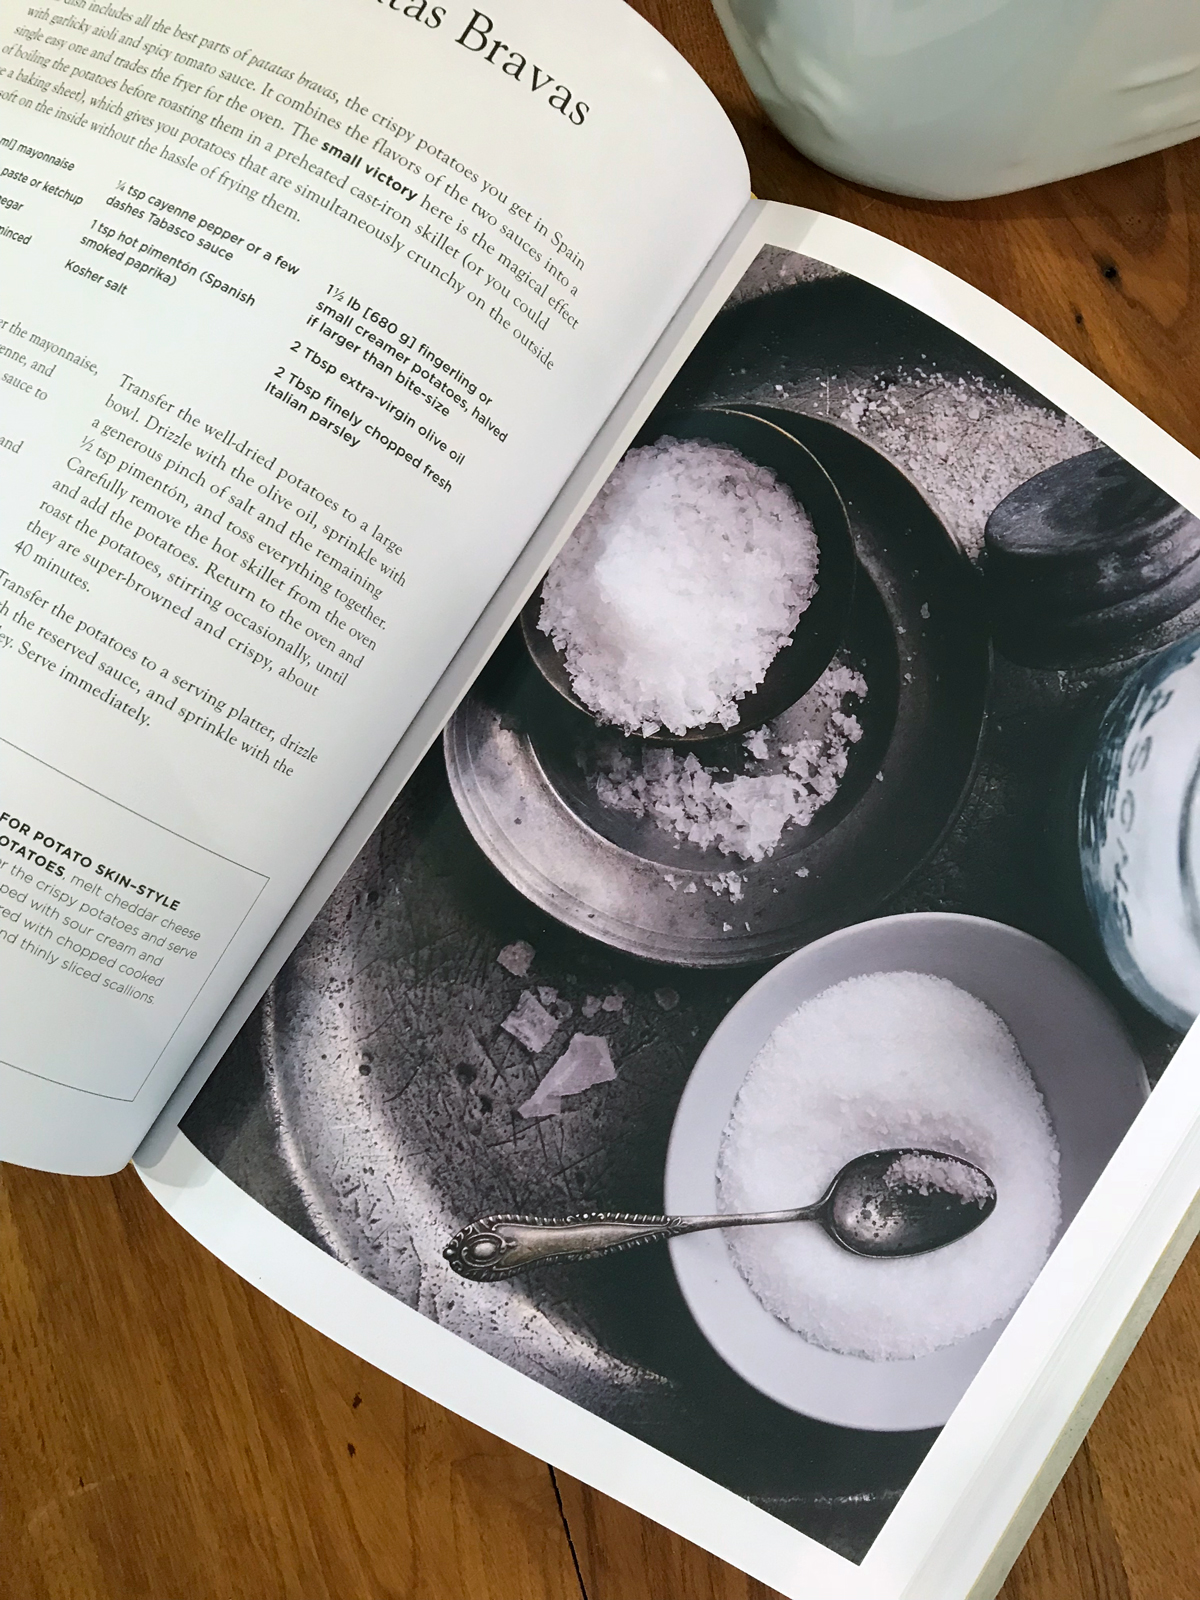 Relish Decor Julia Turshen's Small Victories Cookbook Review